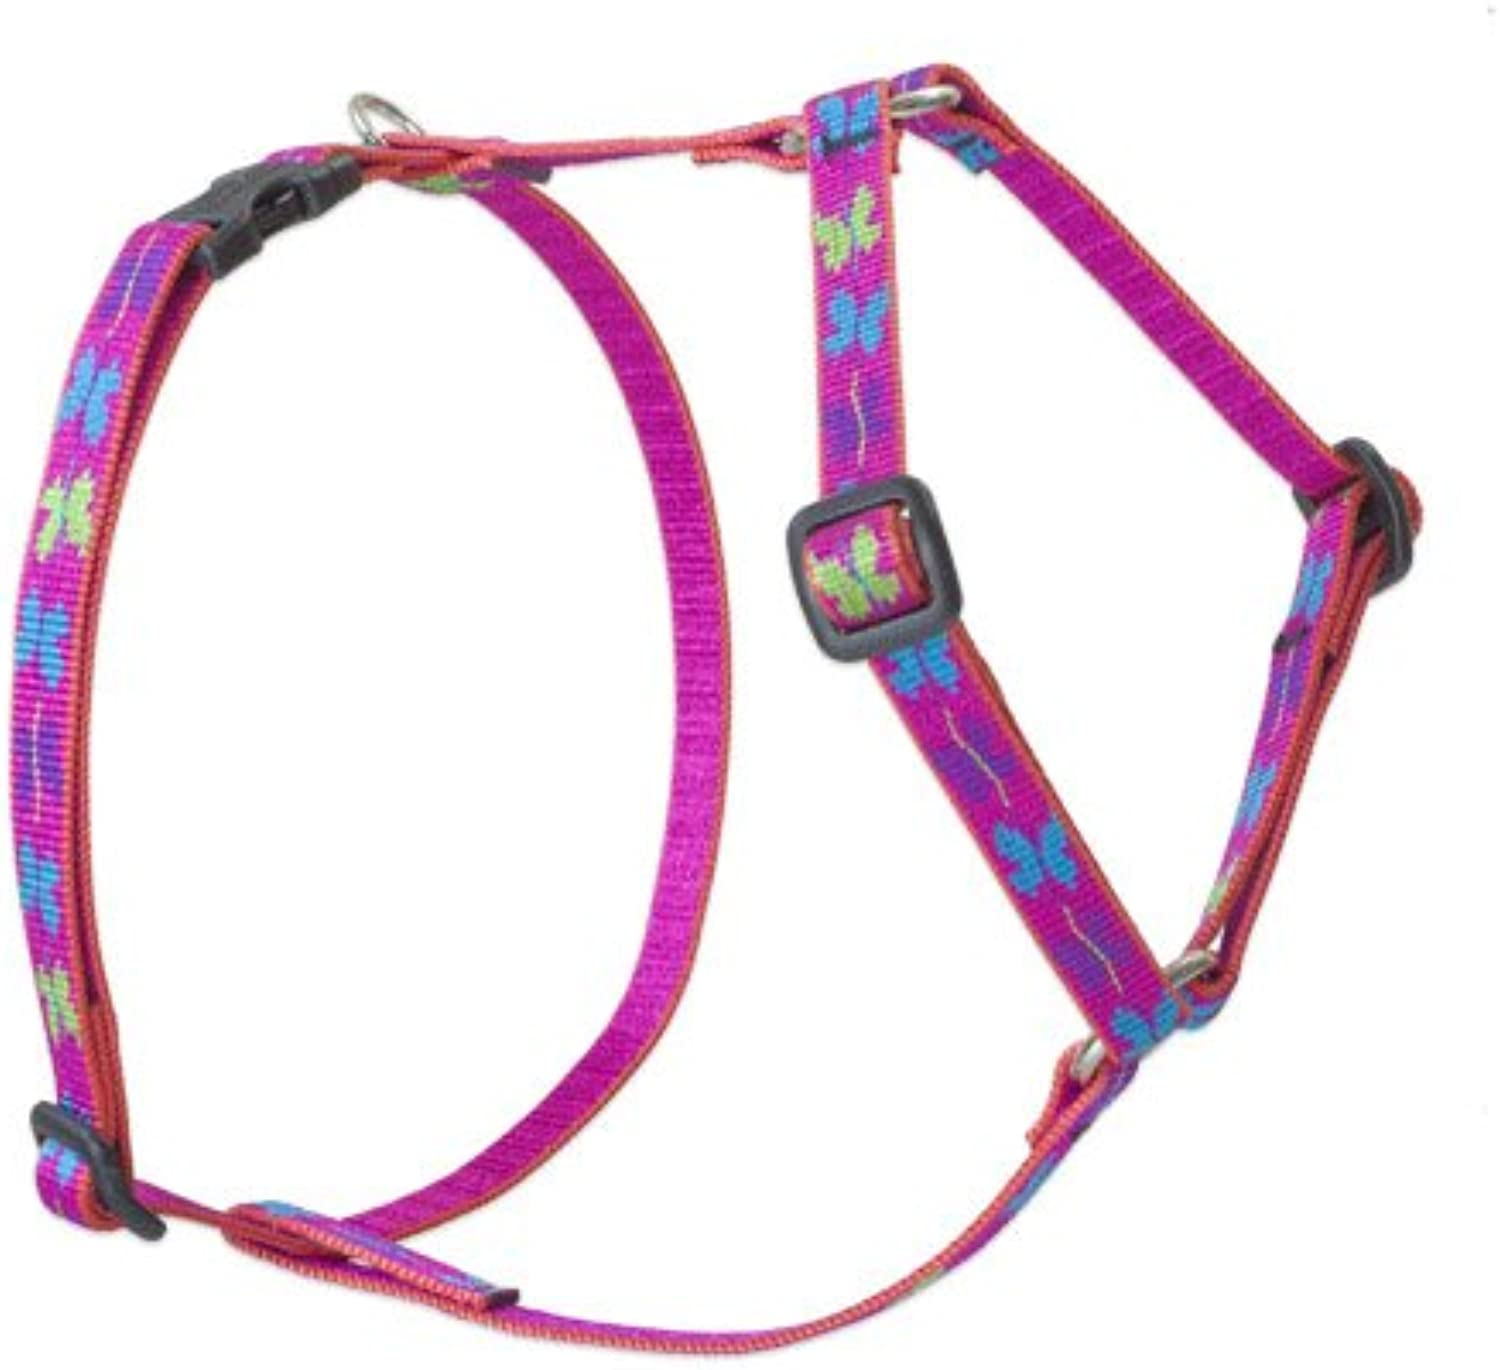 Lupine 1 2Inch Wing It Roman Dog Harness, 9Inch to 14Inch Girth